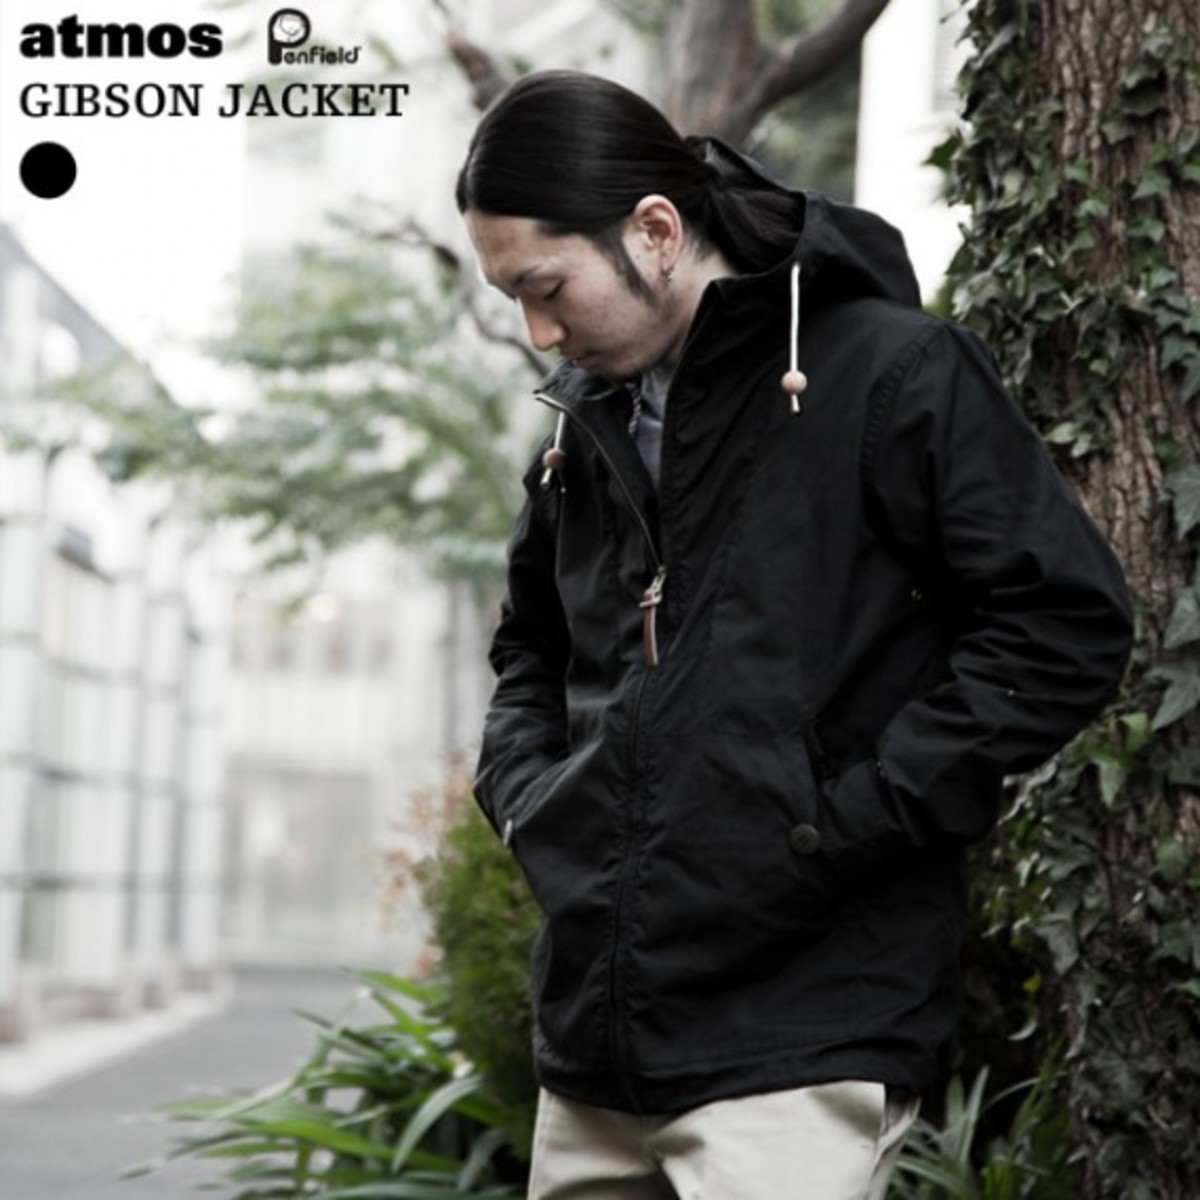 atmos-penfield-gibson-jacket-01